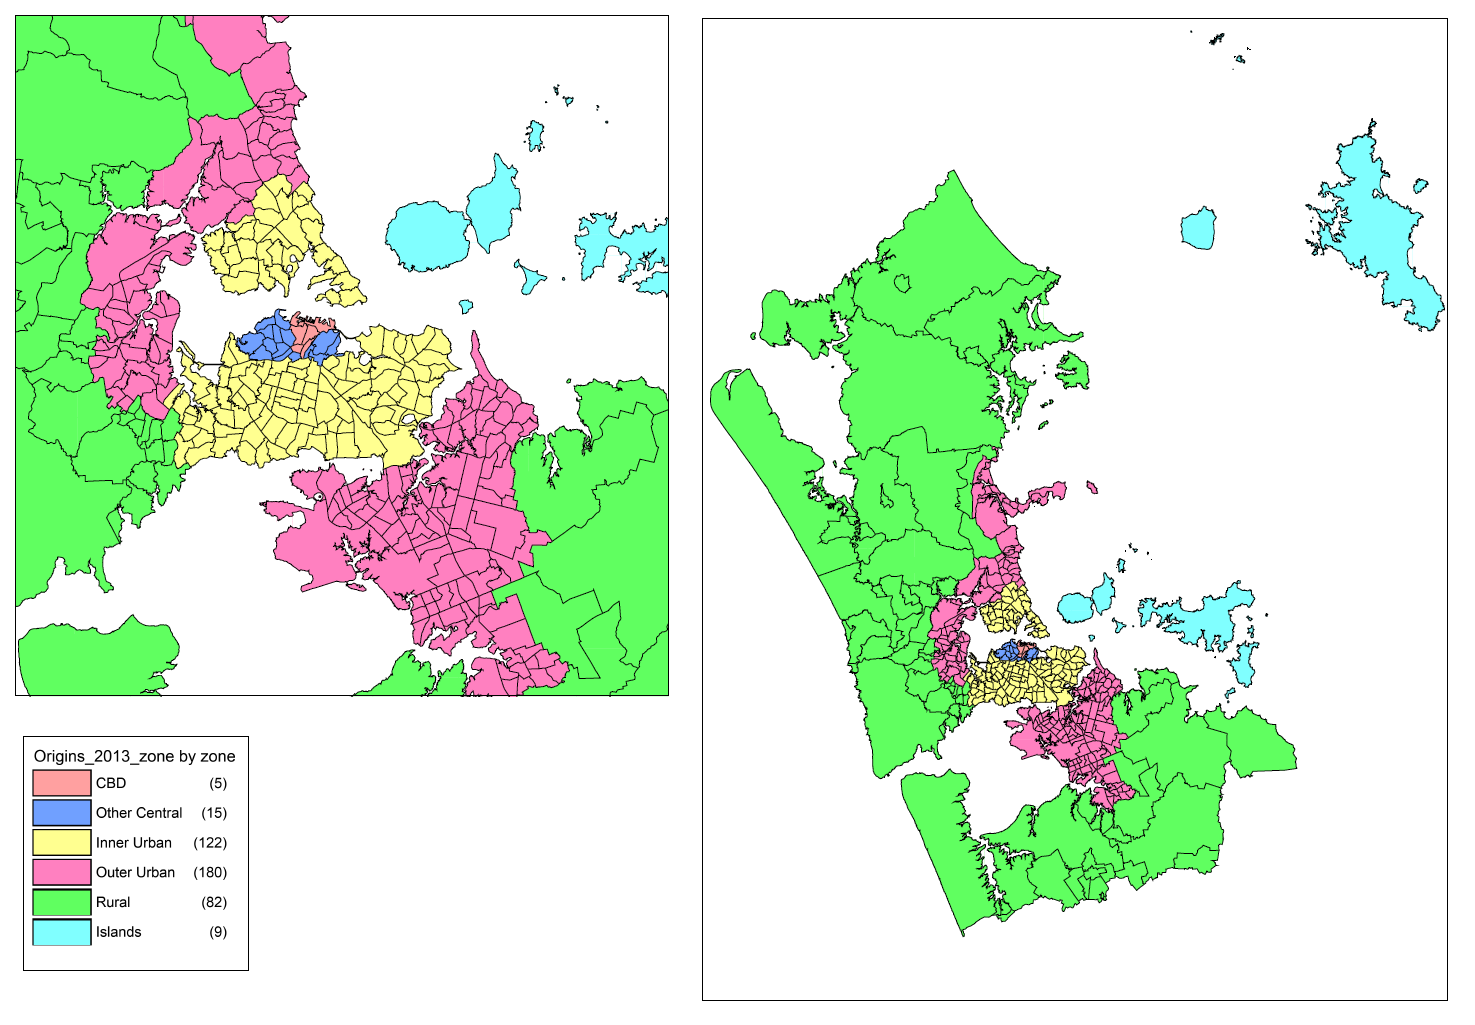 The sectors defined have primarily been based on Local Board areas with the Waitemata Local Board area split between the CBD and the Other Central sector.